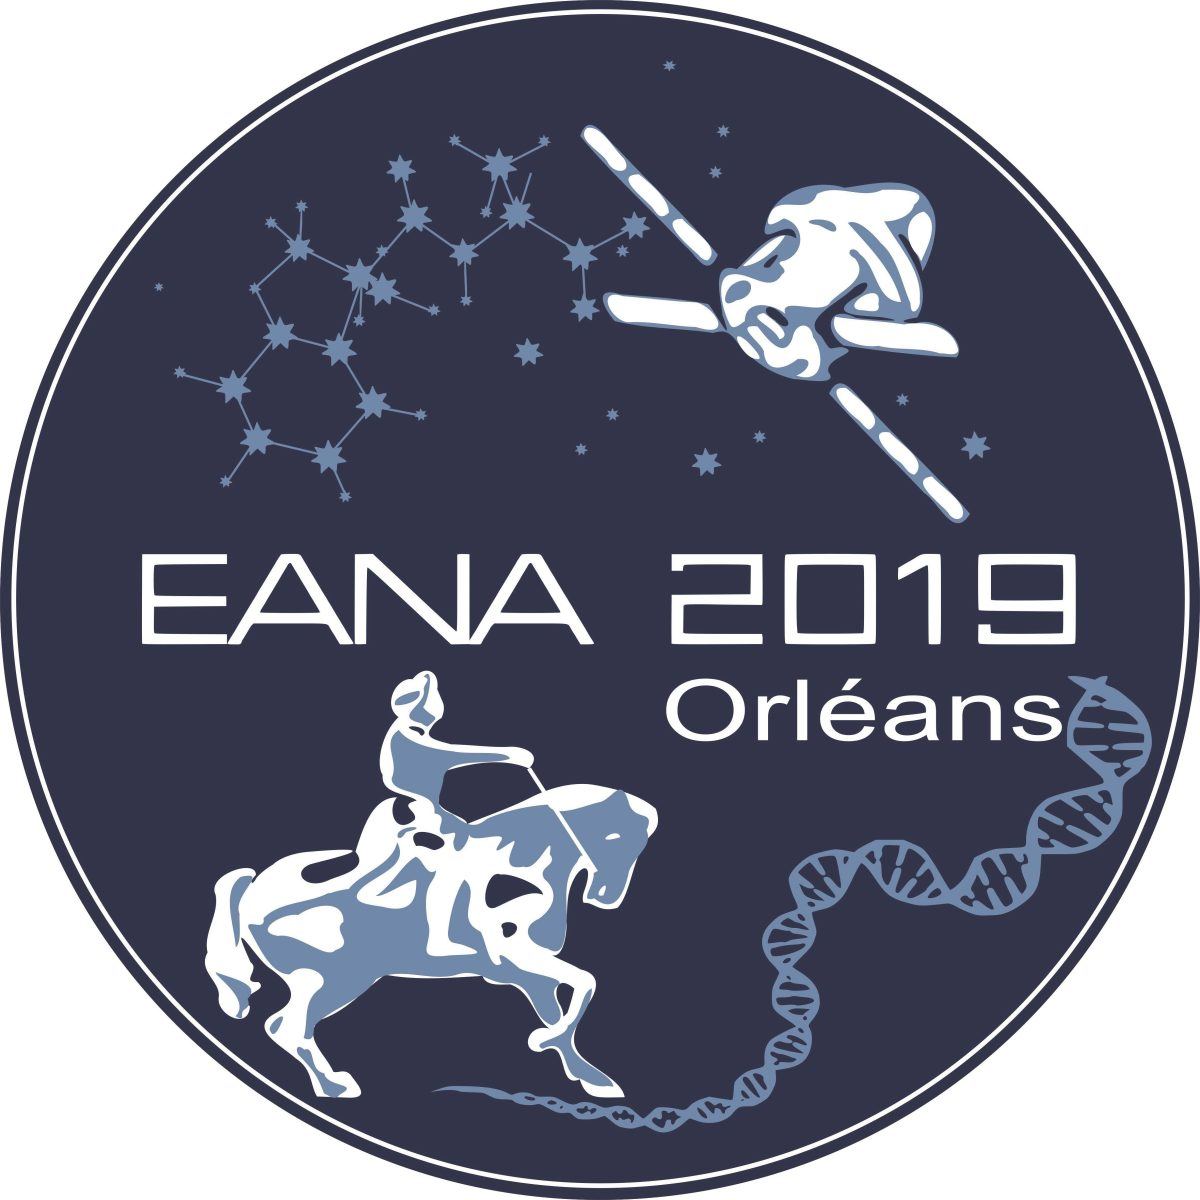 19th Annual EANA Conference – September 3 to 6, 2019 – Orléans